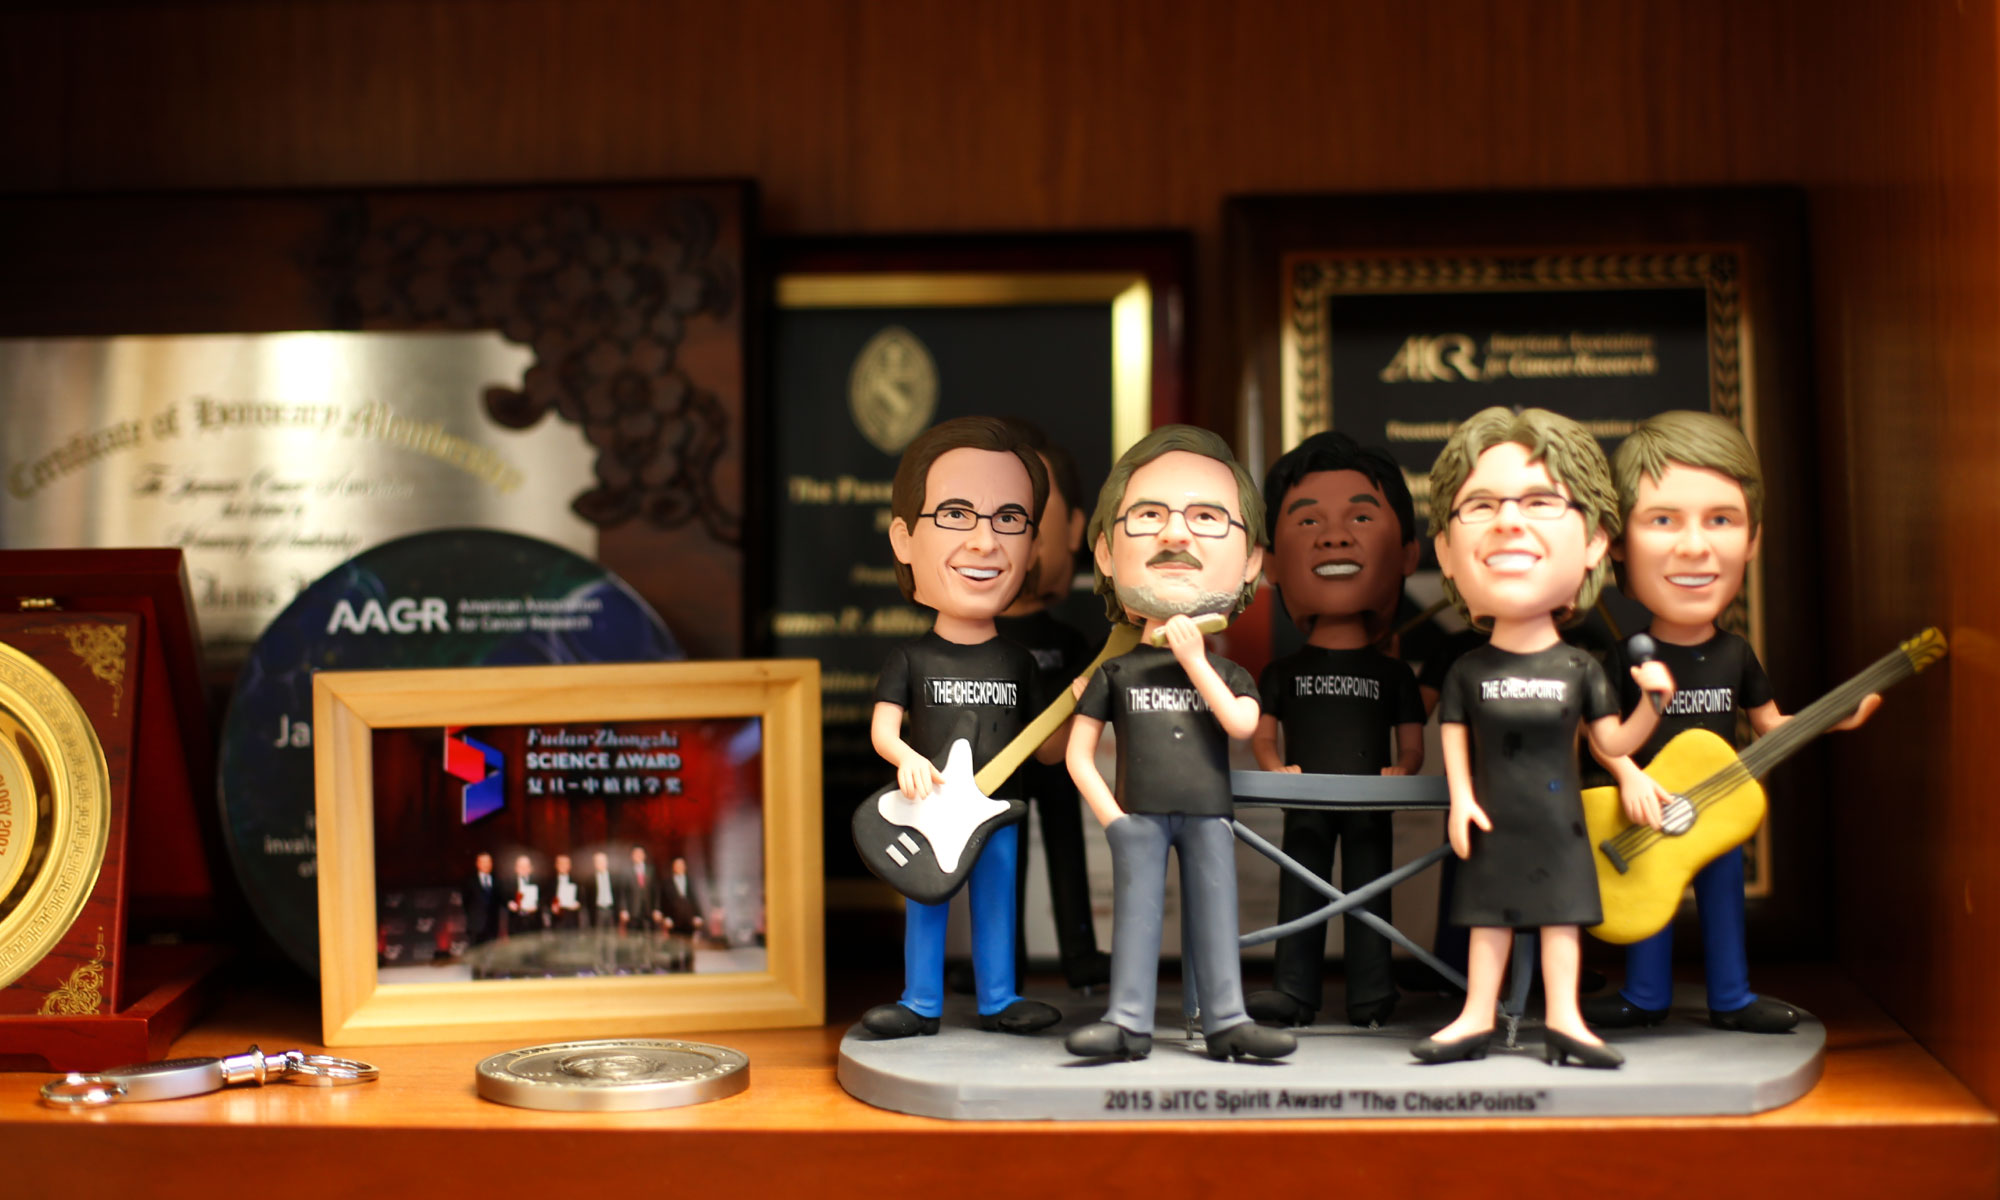 A bobblehead of Jim Allison and his band on a shelf with many awards.